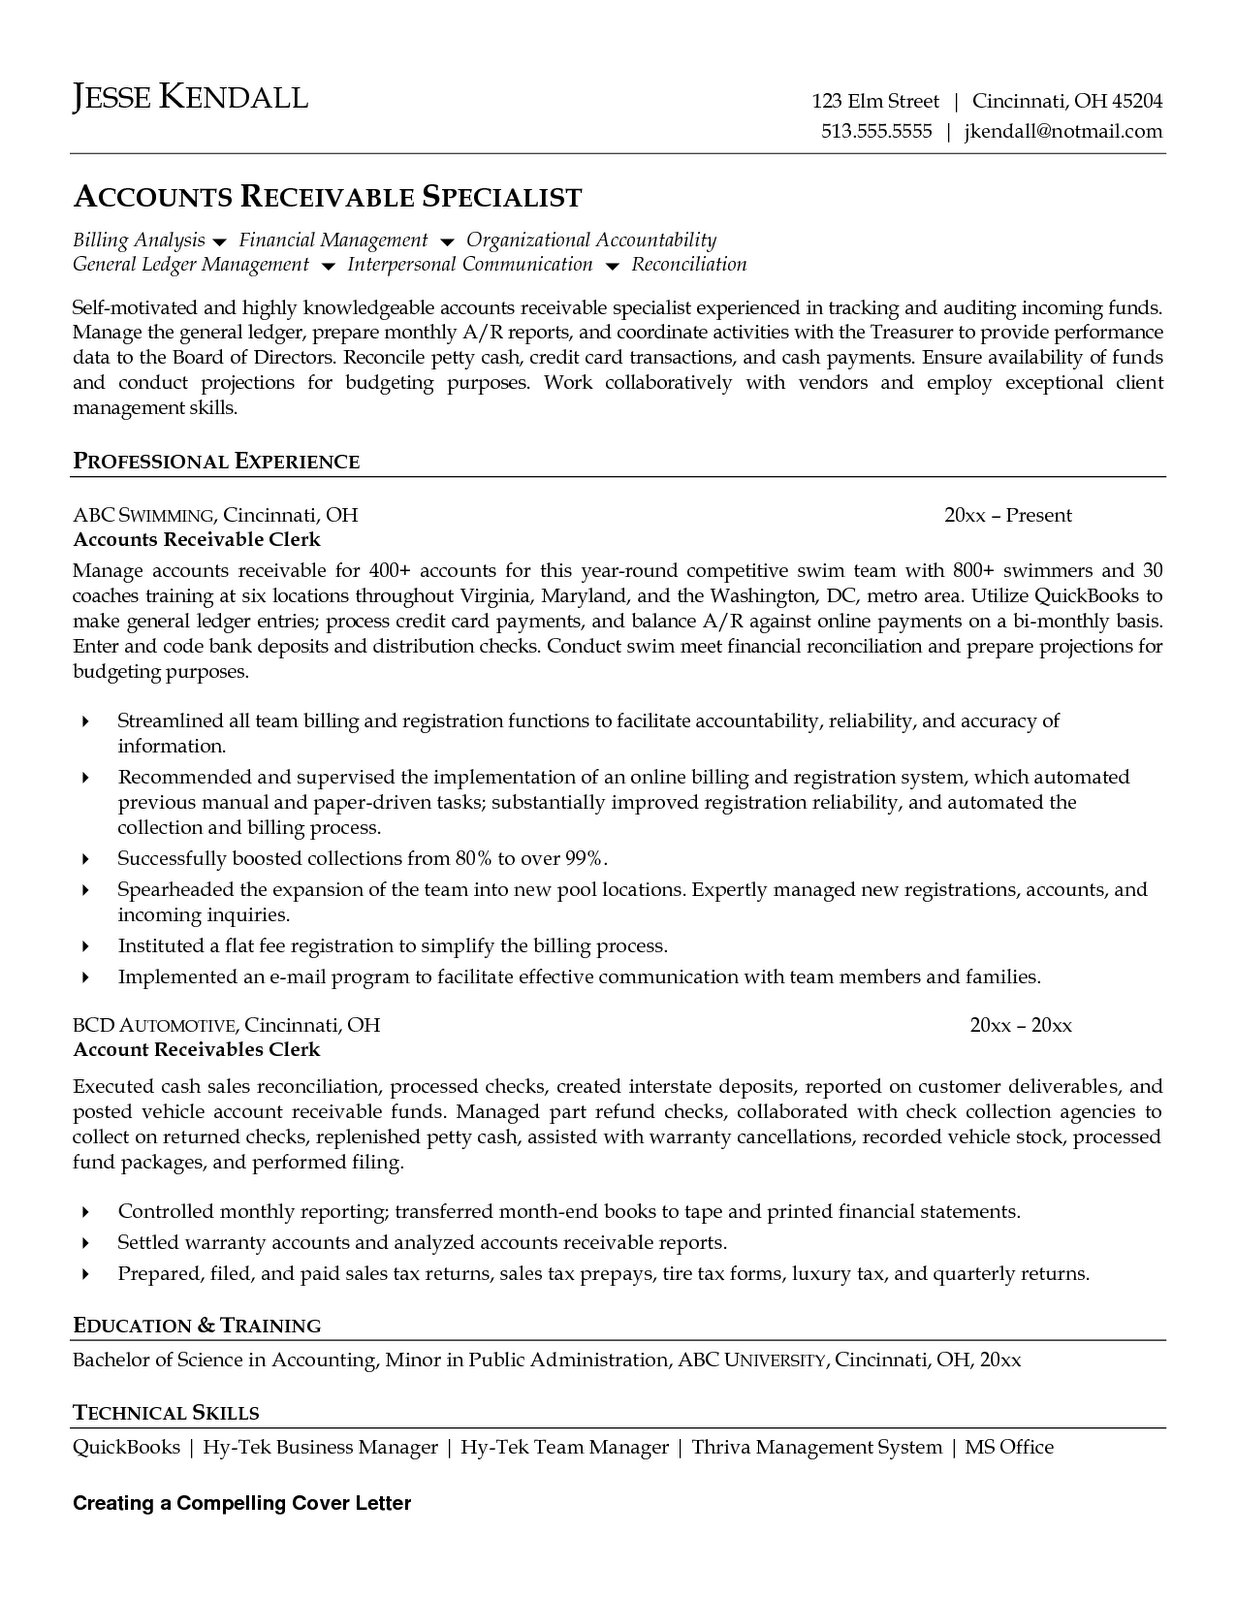 Resume And Cover Letter Writing Rubric How To Write The Best Resume And Cover Letters For Entry